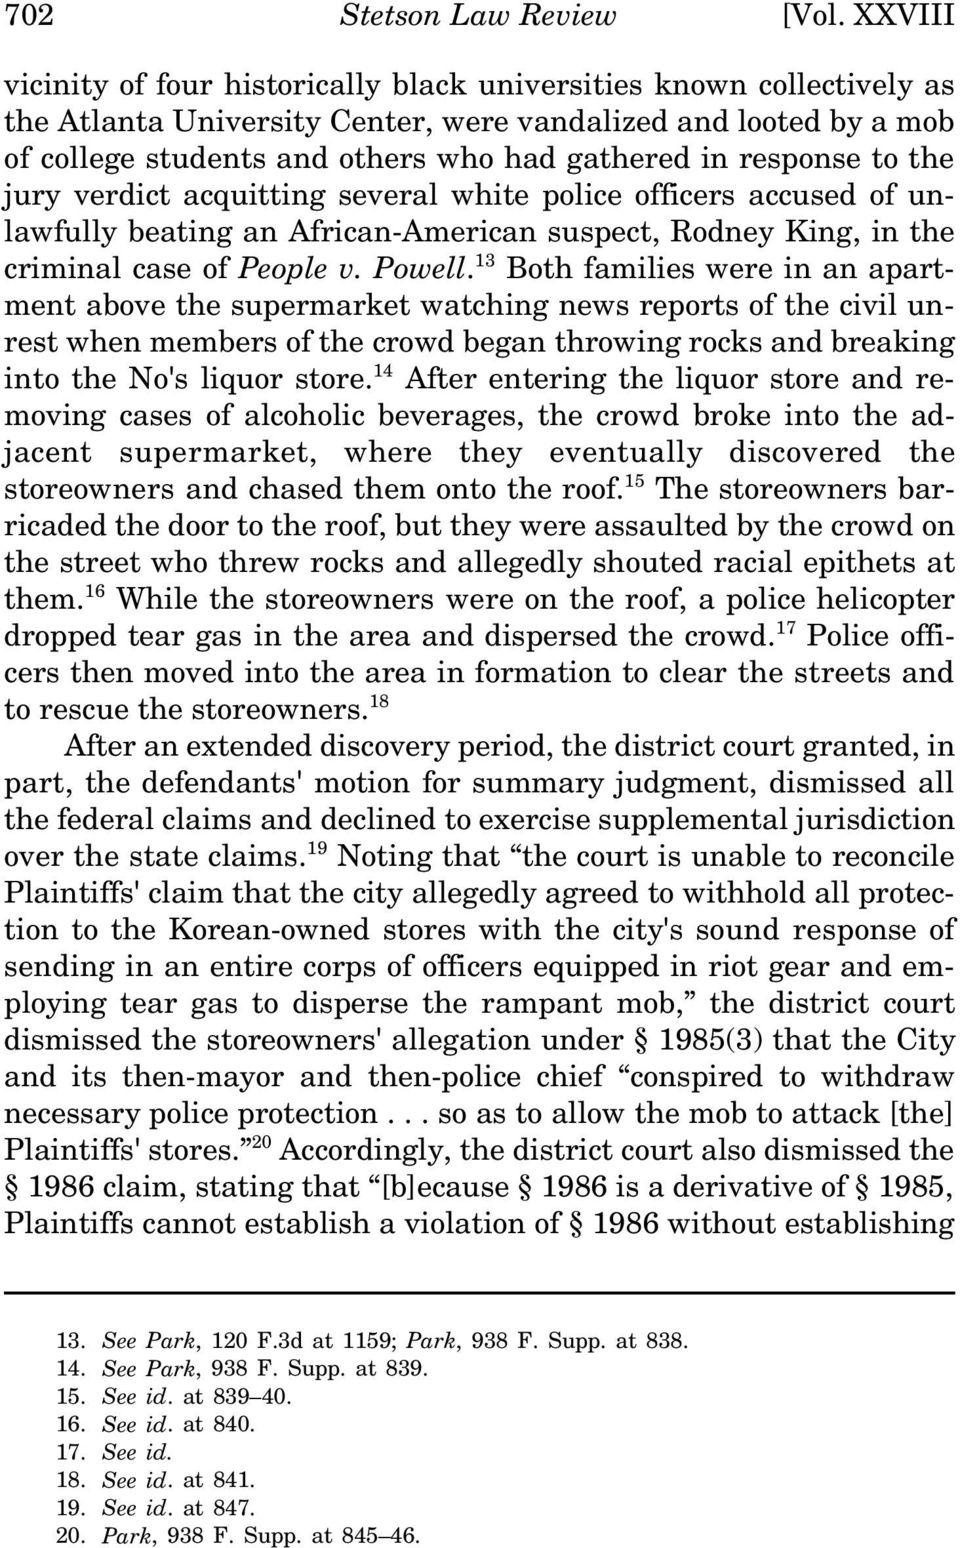 response to the jury verdict acquitting several white police officers accused of unlawfully beating an African-American suspect, Rodney King, in the criminal case of People v. Powell.